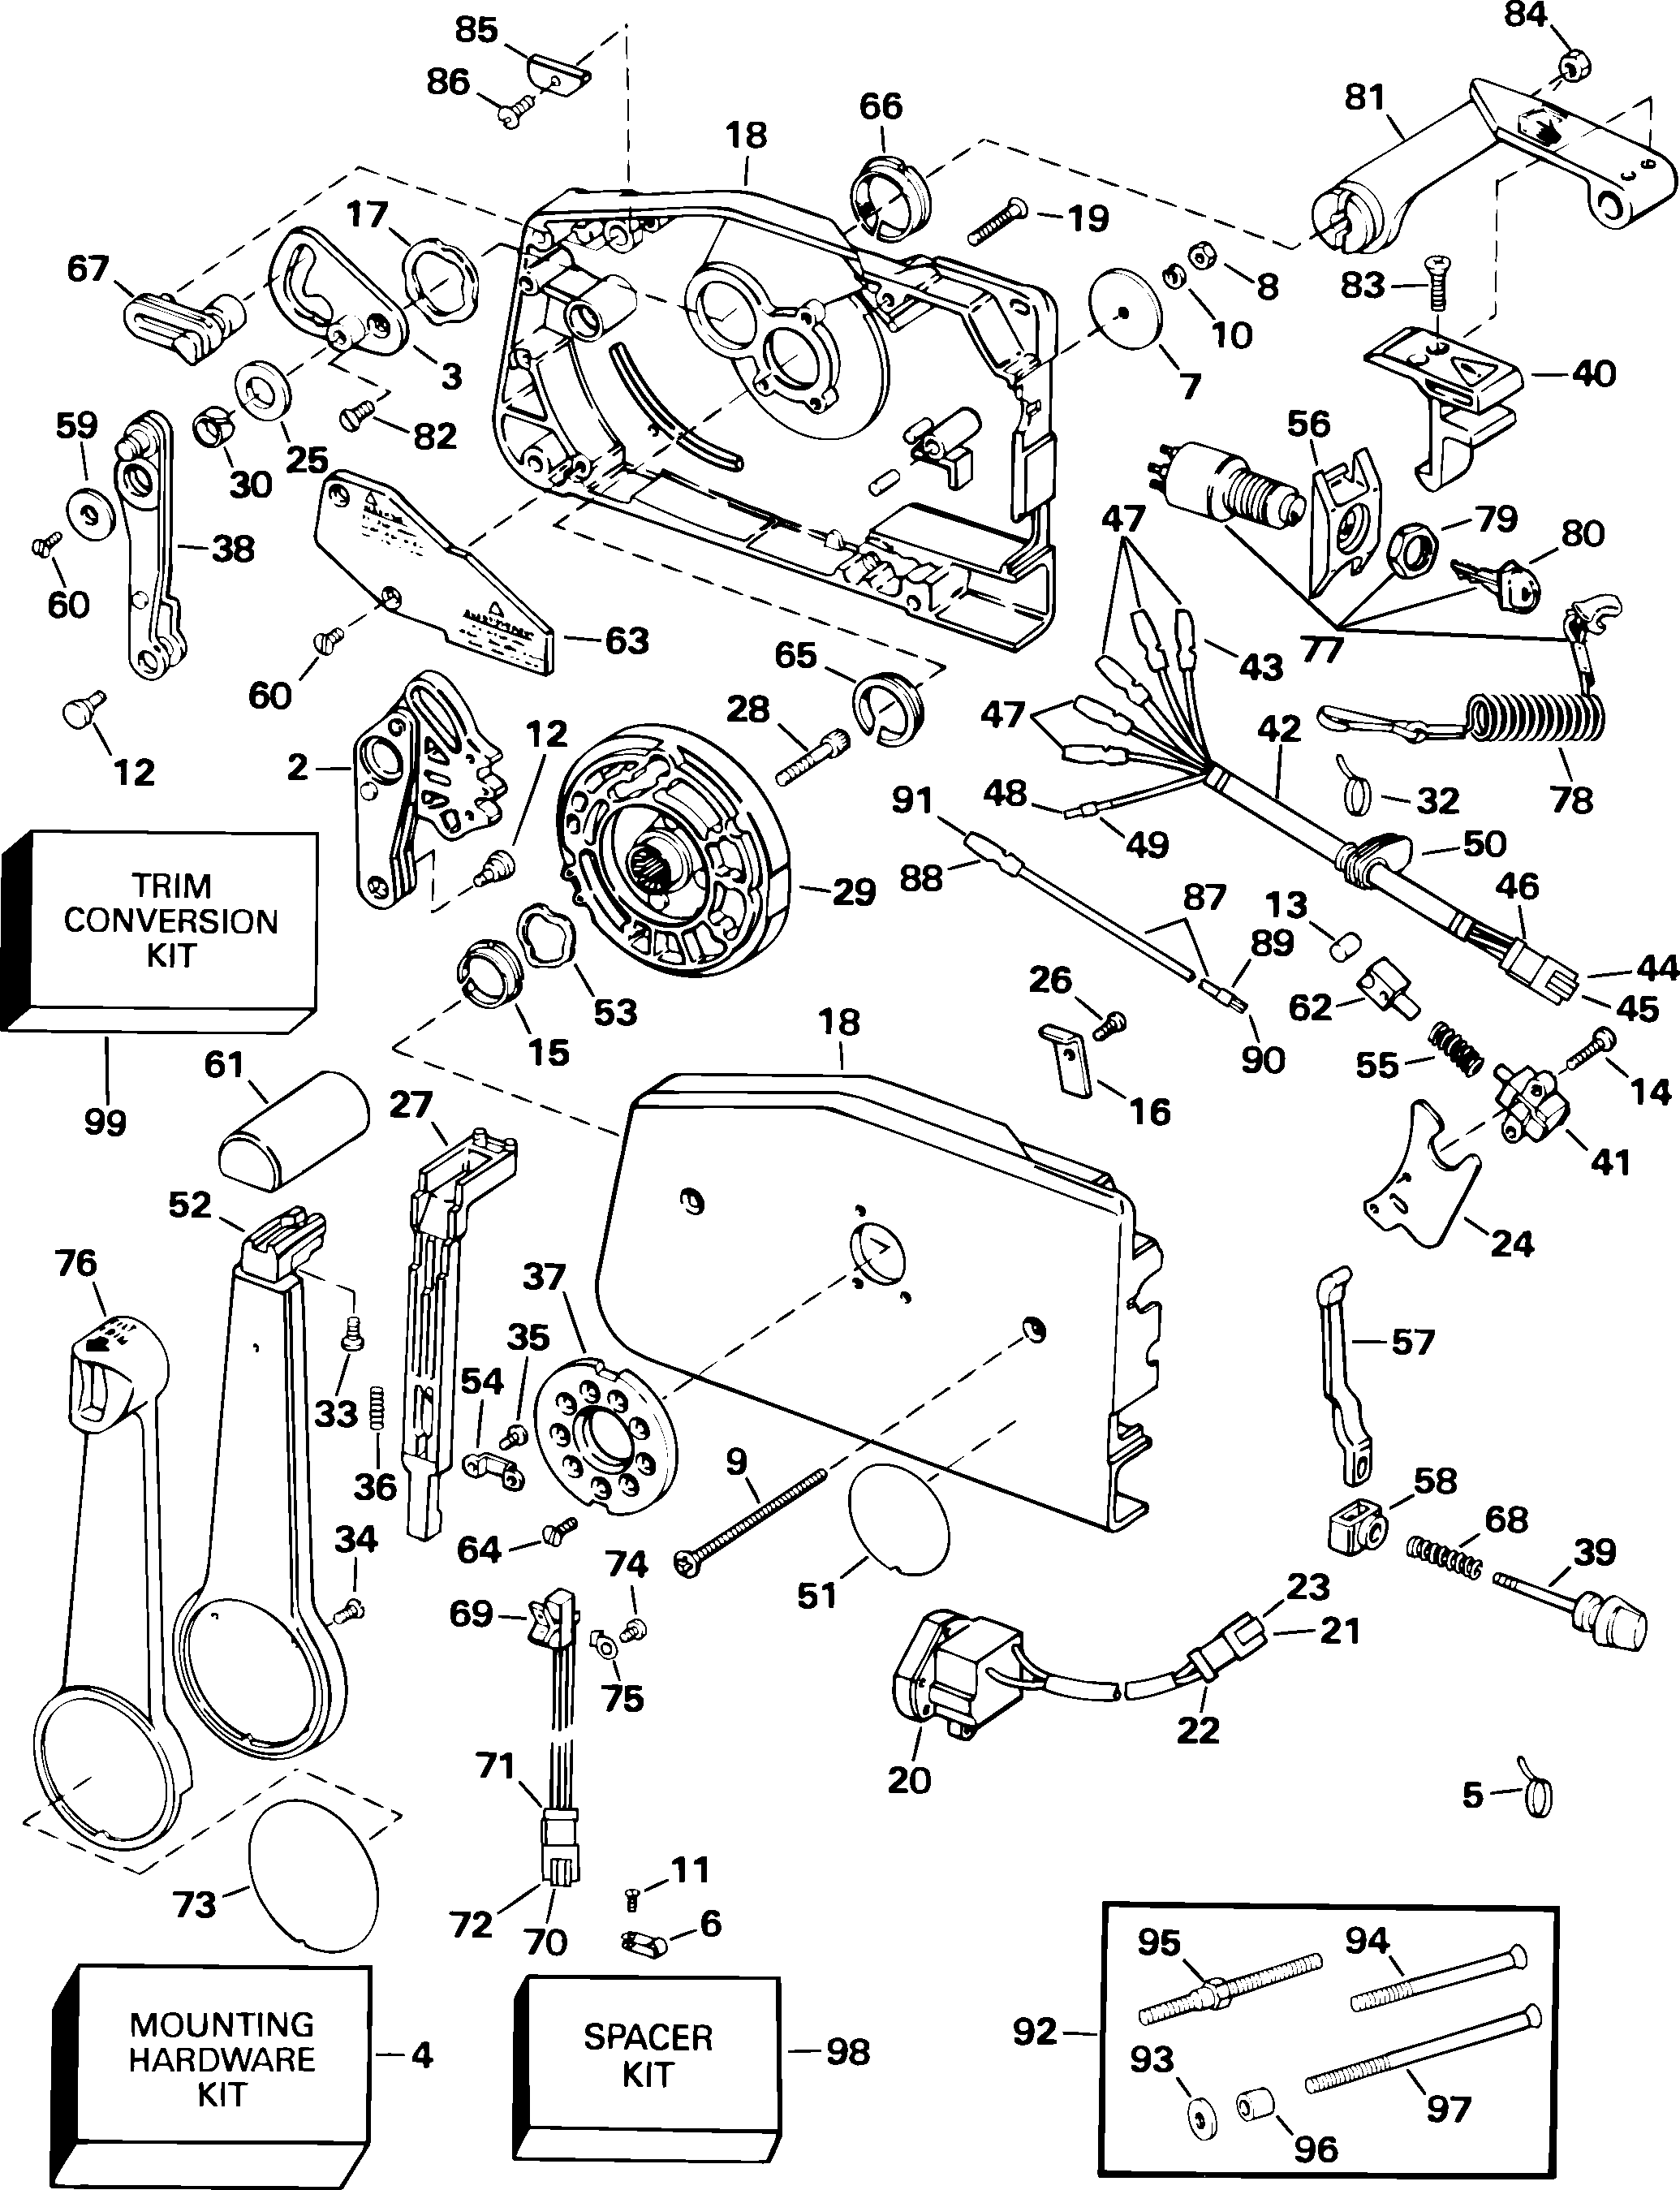 Wonderful mercruiser 470 alternator conversion wiring diagram 59075 mercruiser 470 alternator conversion wiring diagr y